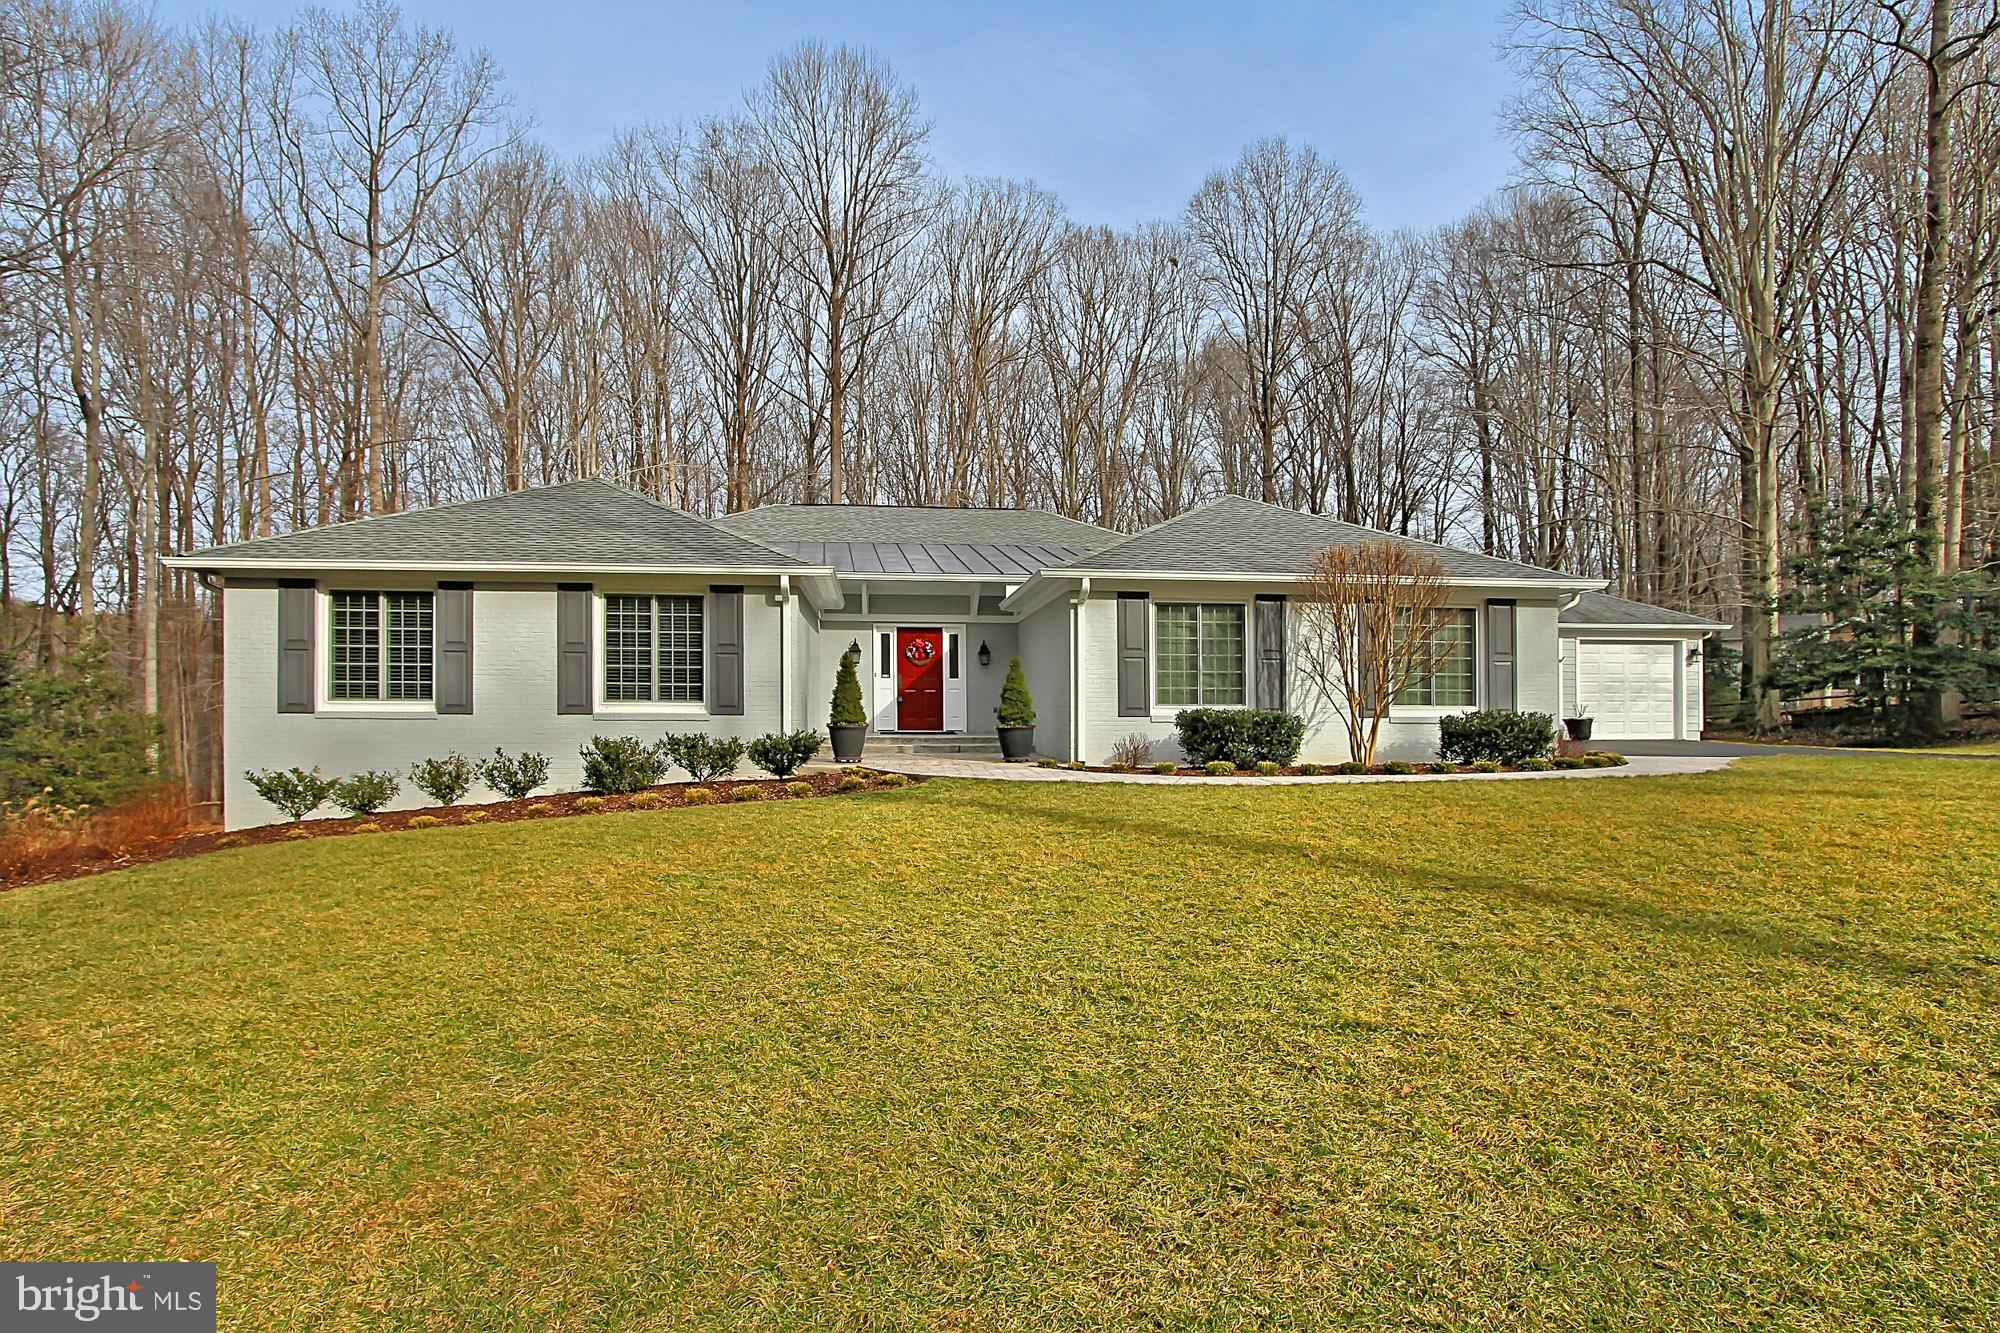 One level living at its finest!  Exquisite, completely remodeled, one-of-a-kind gem in popular Ardmore Woods.  This 4 BR, 3.5 BA transitional style home delivers 5,400+ sq. ft. of interior living space and a premium 1.16 acre wooded lot backing to parkland for ultimate privacy.  Stately brick exterior, garage parking for 3 cars, and an open floor plan!  Wide-plank cherry hardwood floors, two fireplaces, custom built-ins, high ceilings, and an abundance of windows!  Custom designed gourmet kitchen w/ Subzero refrigerator, Jennaire down-draft cooktop, and Wolf double ovens and warming drawer.  Gracious main level master suite w/ unbelievable custom walk-in closet and master bathroom w/ double sink vanity and over-sized frameless glass shower w/ built-in bench.  Cheery Sunroom w/ pastoral views!  Lower level rec room w/ walk-out features fireplace and wet bar.   LL Fourth bedroom and full bath are perfect guest quarters!  Separate workshop w/ workbench / cabinets and storage space!  Maintenance-free Fiberon deck w/ slate patio and expert landscaping!   Generac whole house generator!